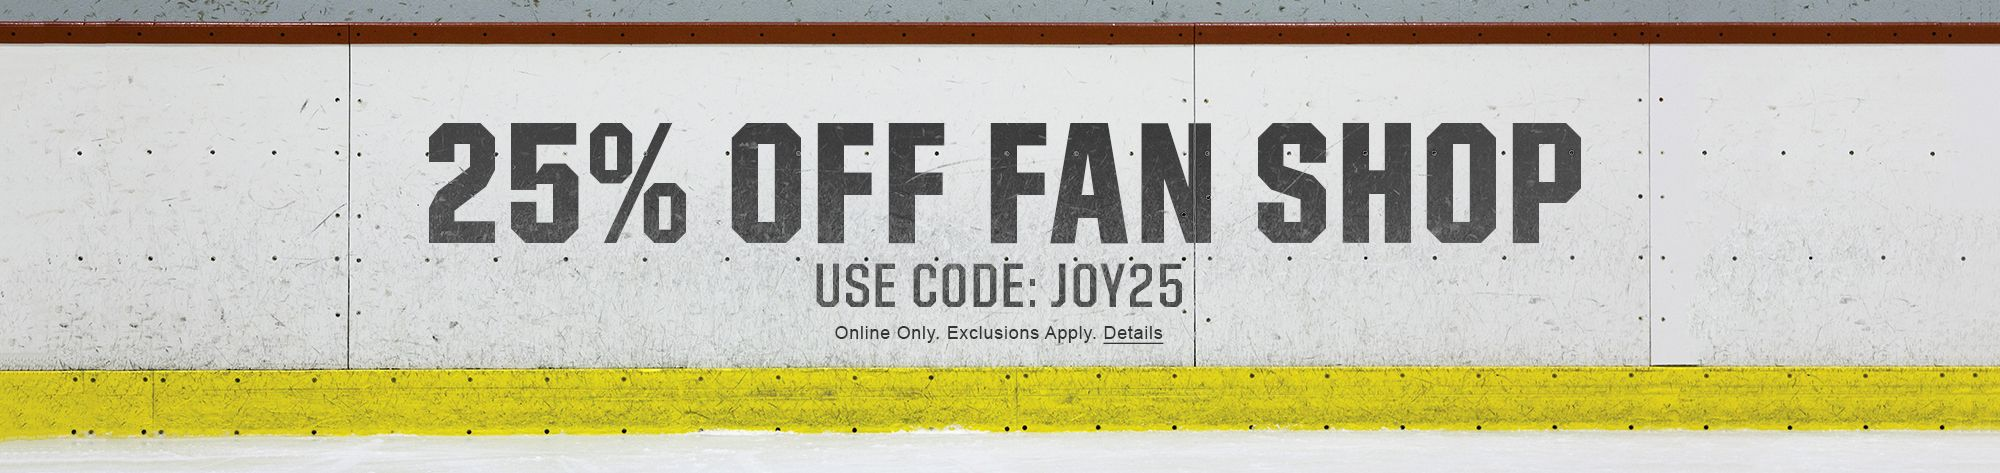 25% Off Fan Shop Use Code: JOY25